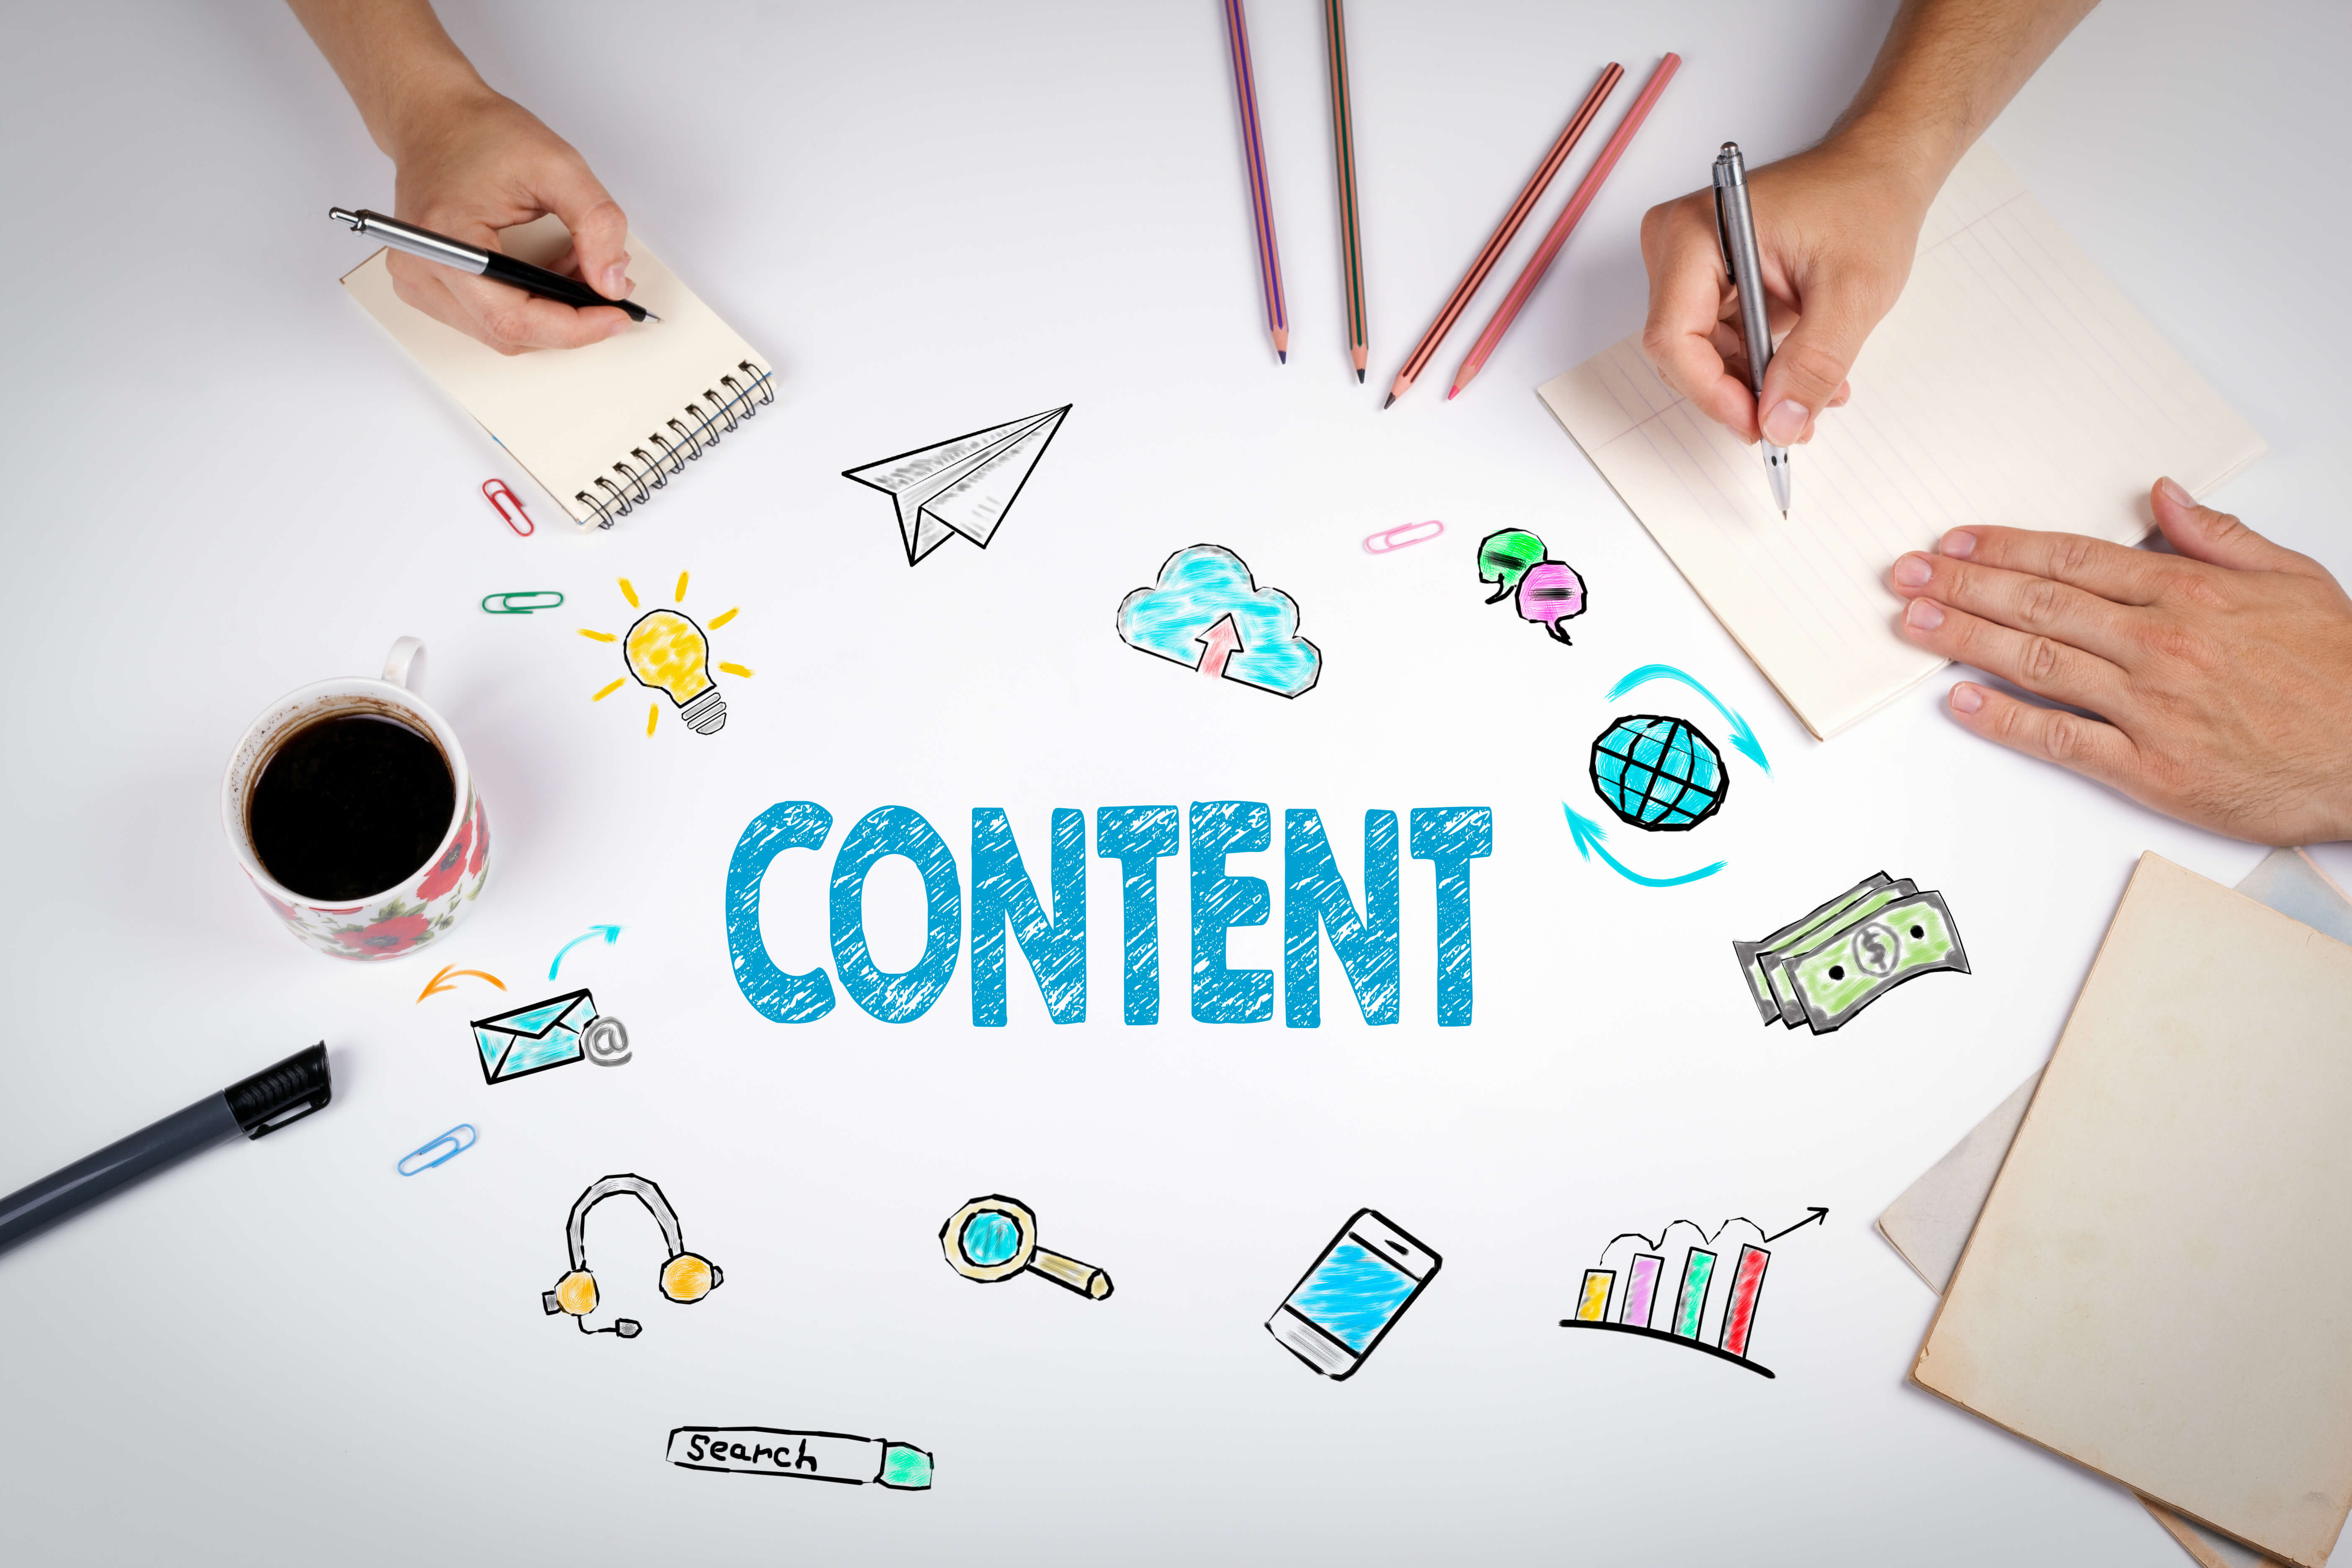 content development is key to being visible on google search results